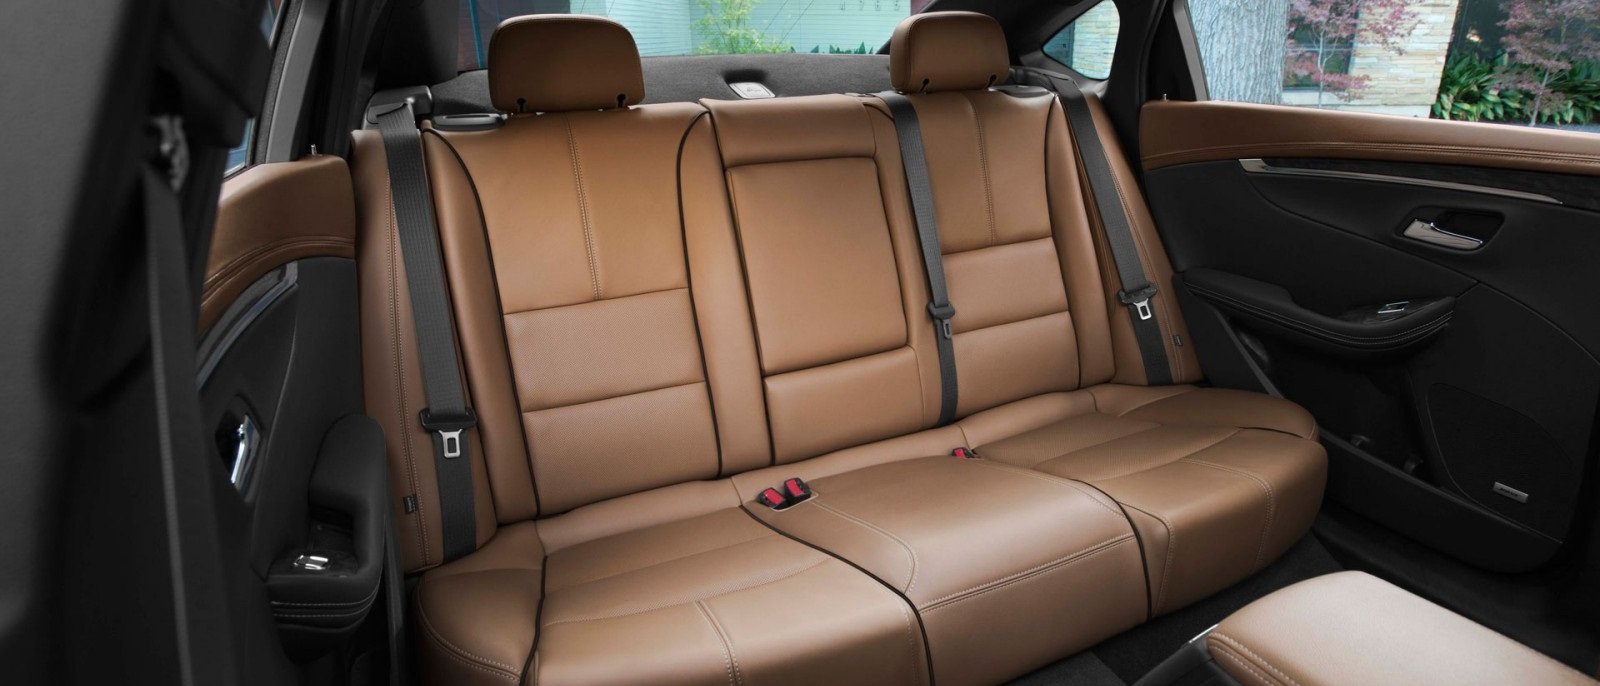 2015-Chevy-Impala-Rear-Seats